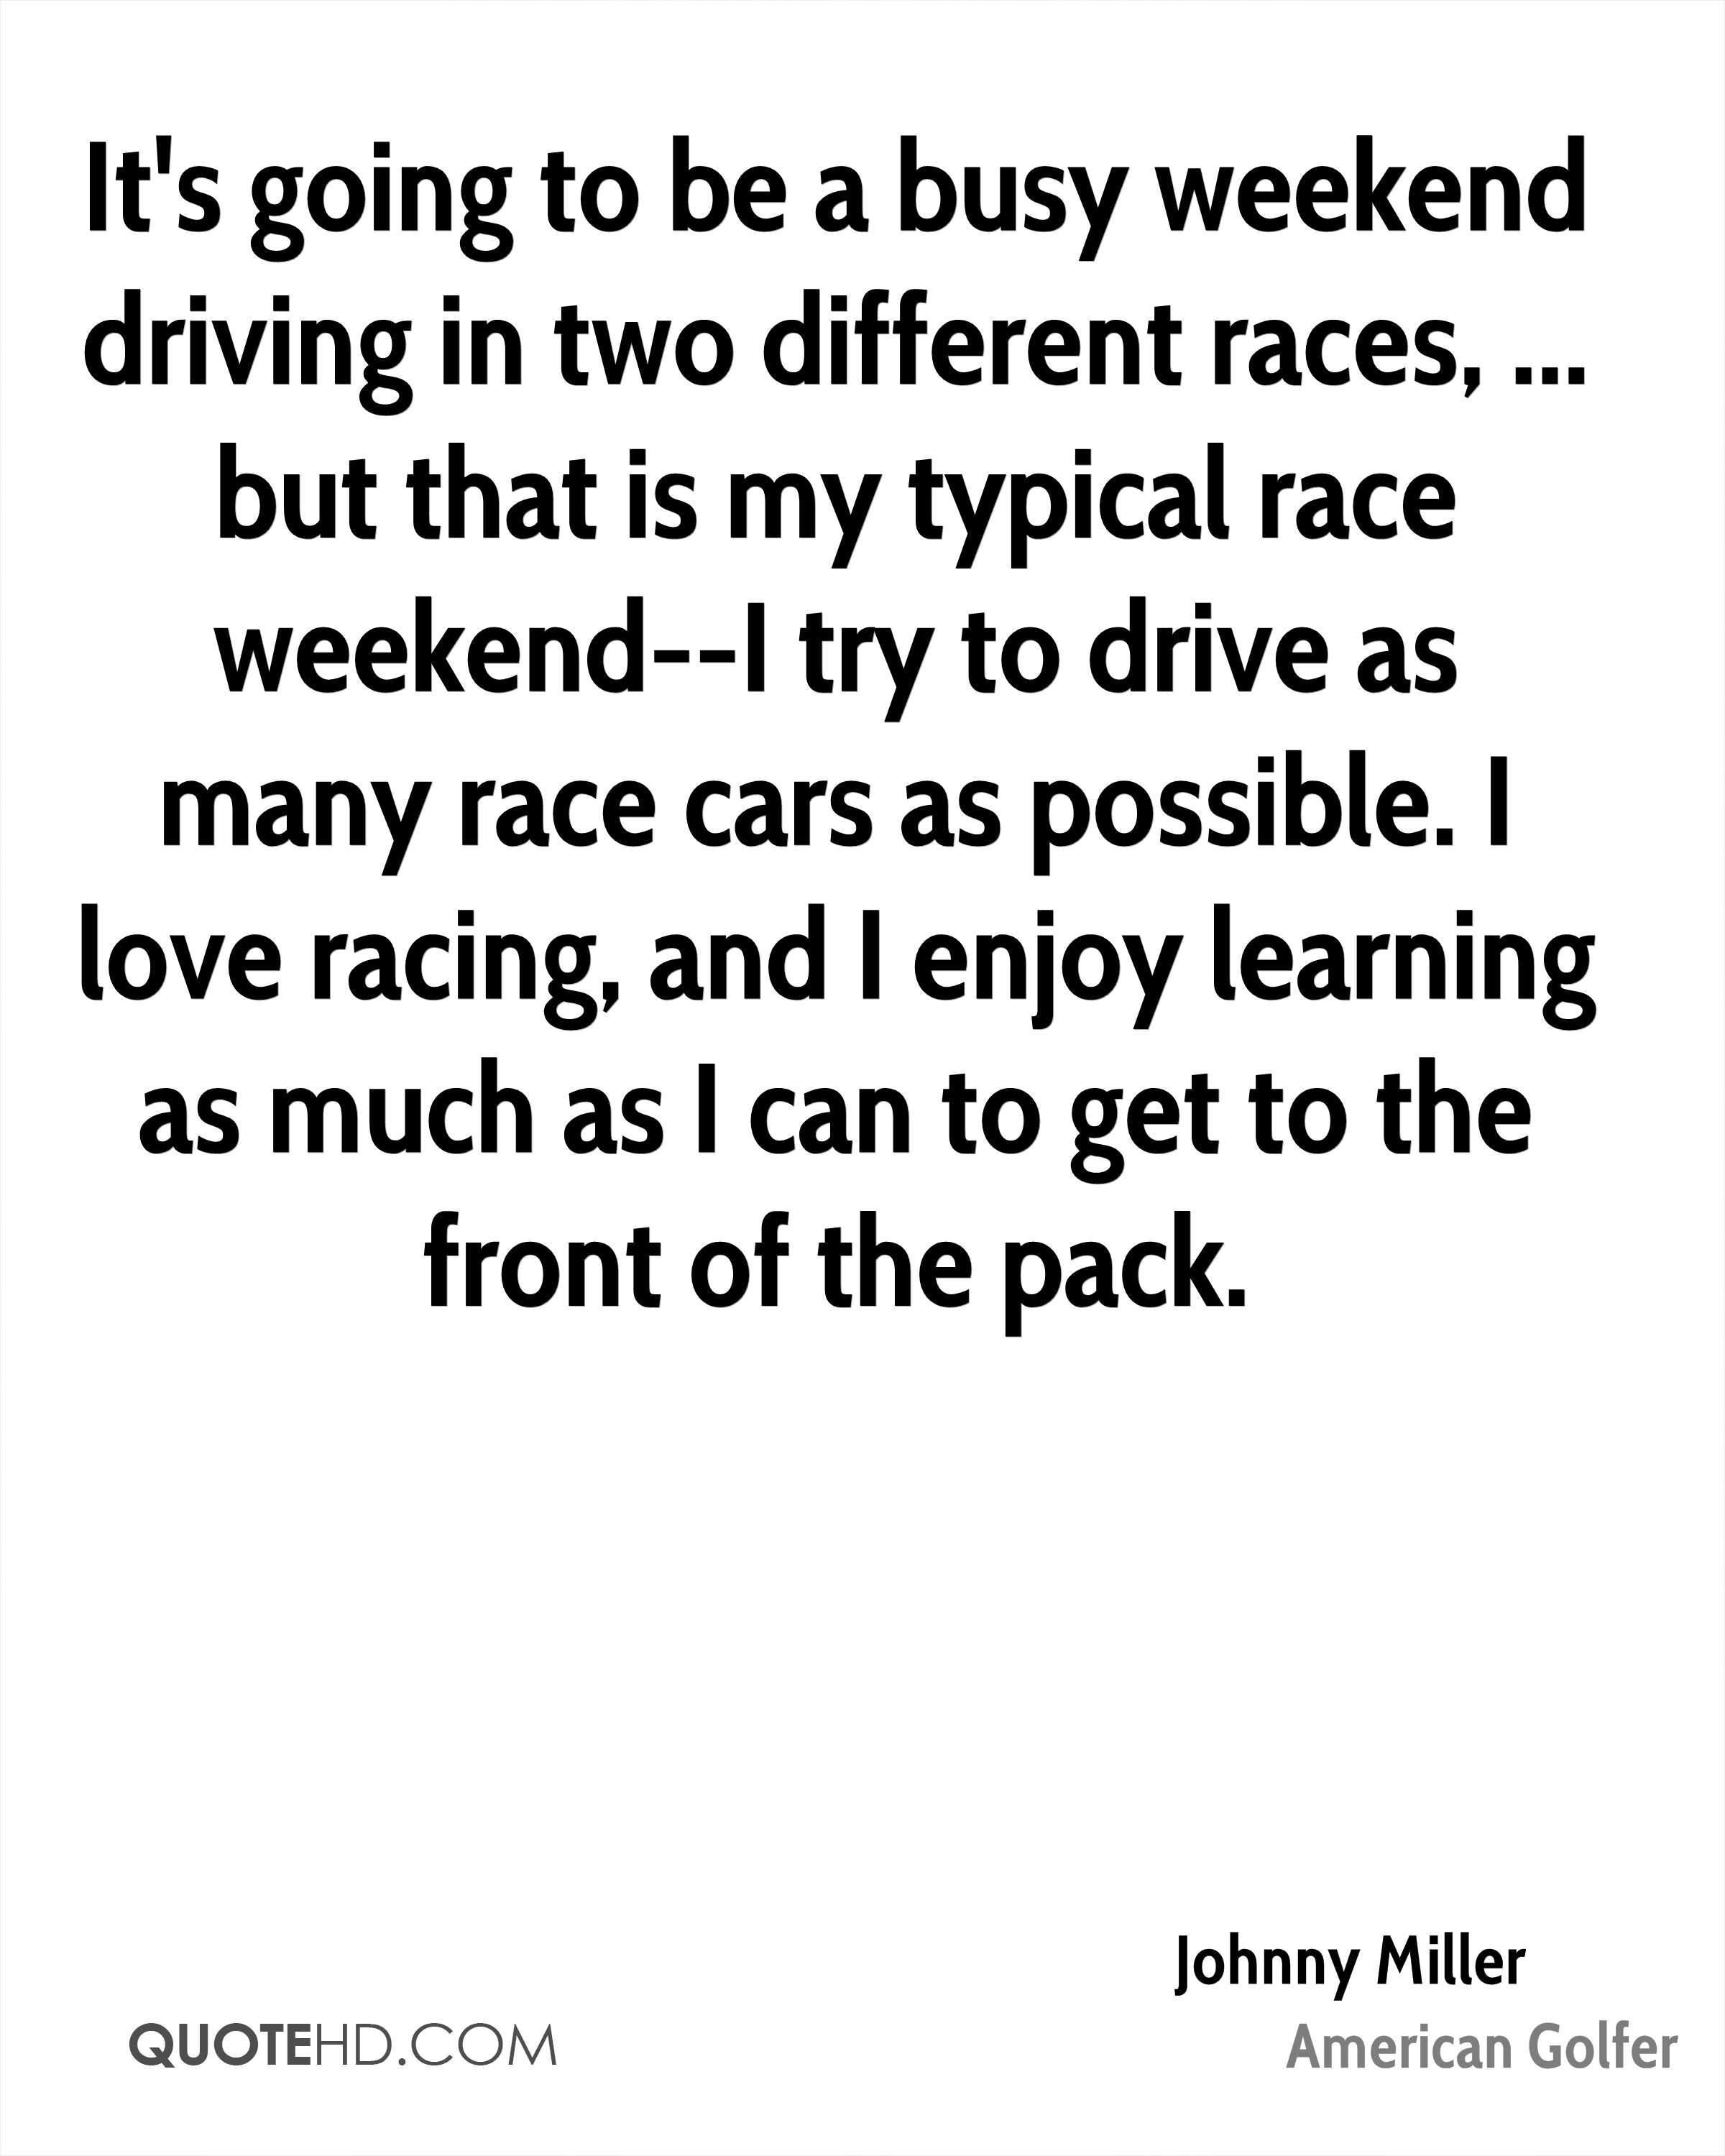 It's going to be a busy weekend driving in two different races, ... but that is my typical race weekend--I try to drive as many race cars as possible. I love racing, and I enjoy learning as much as I can to get to the front of the pack.